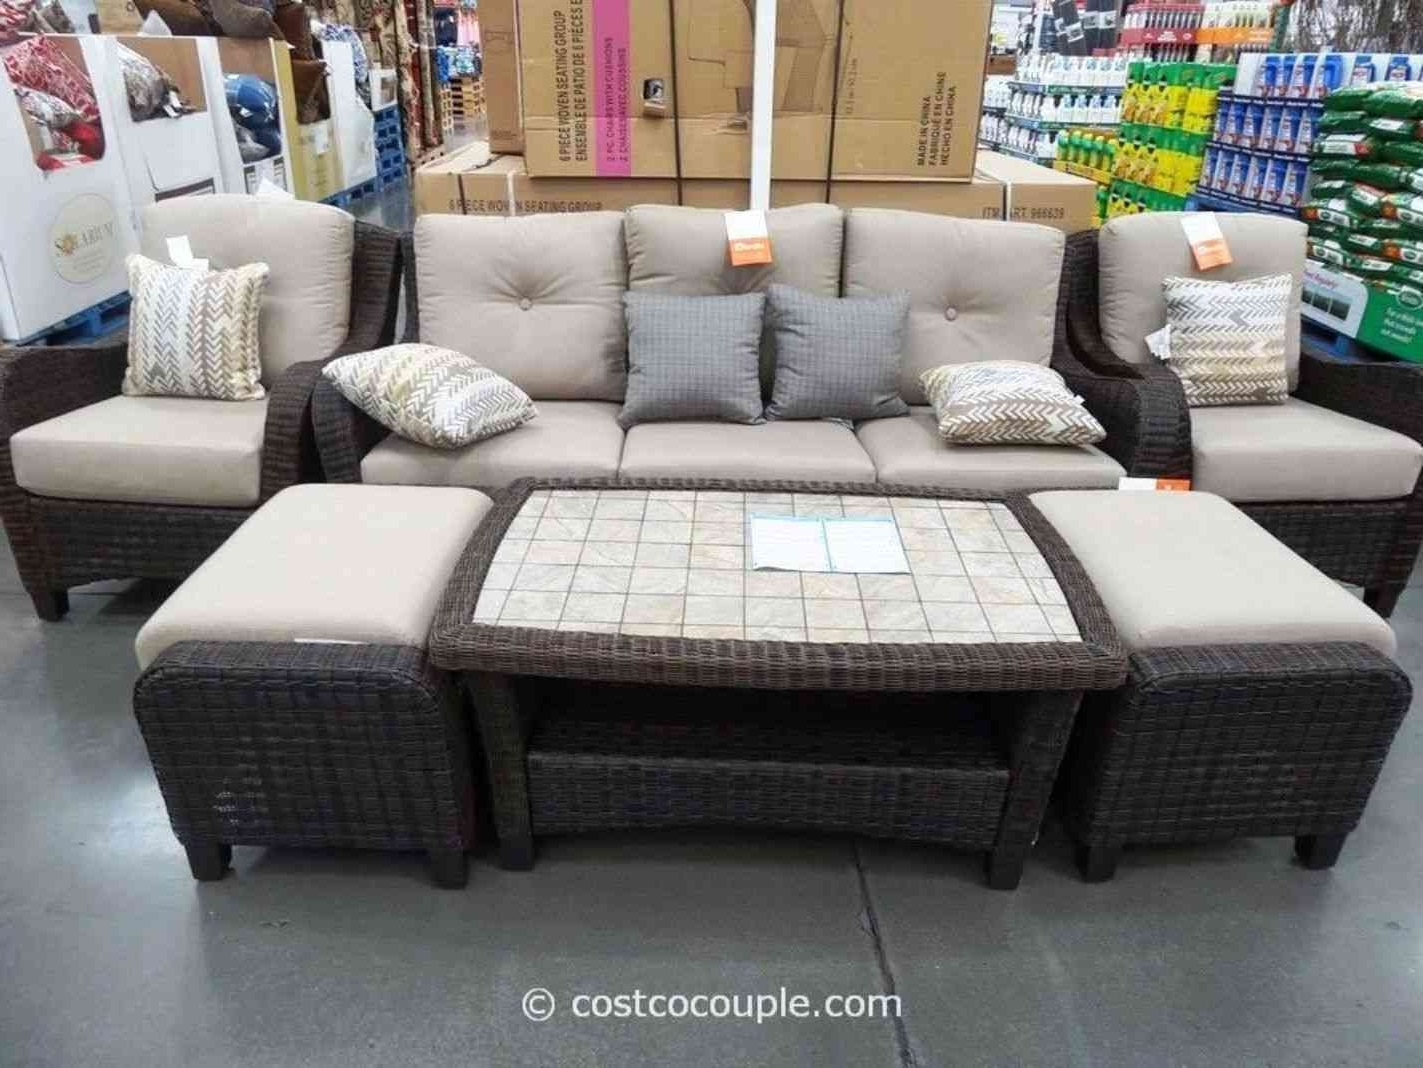 2019 Unusual Costco Patio Furniture Clearance Cool Conversation Sets With Pertaining To Costco Patio Conversation Sets (View 10 of 20)